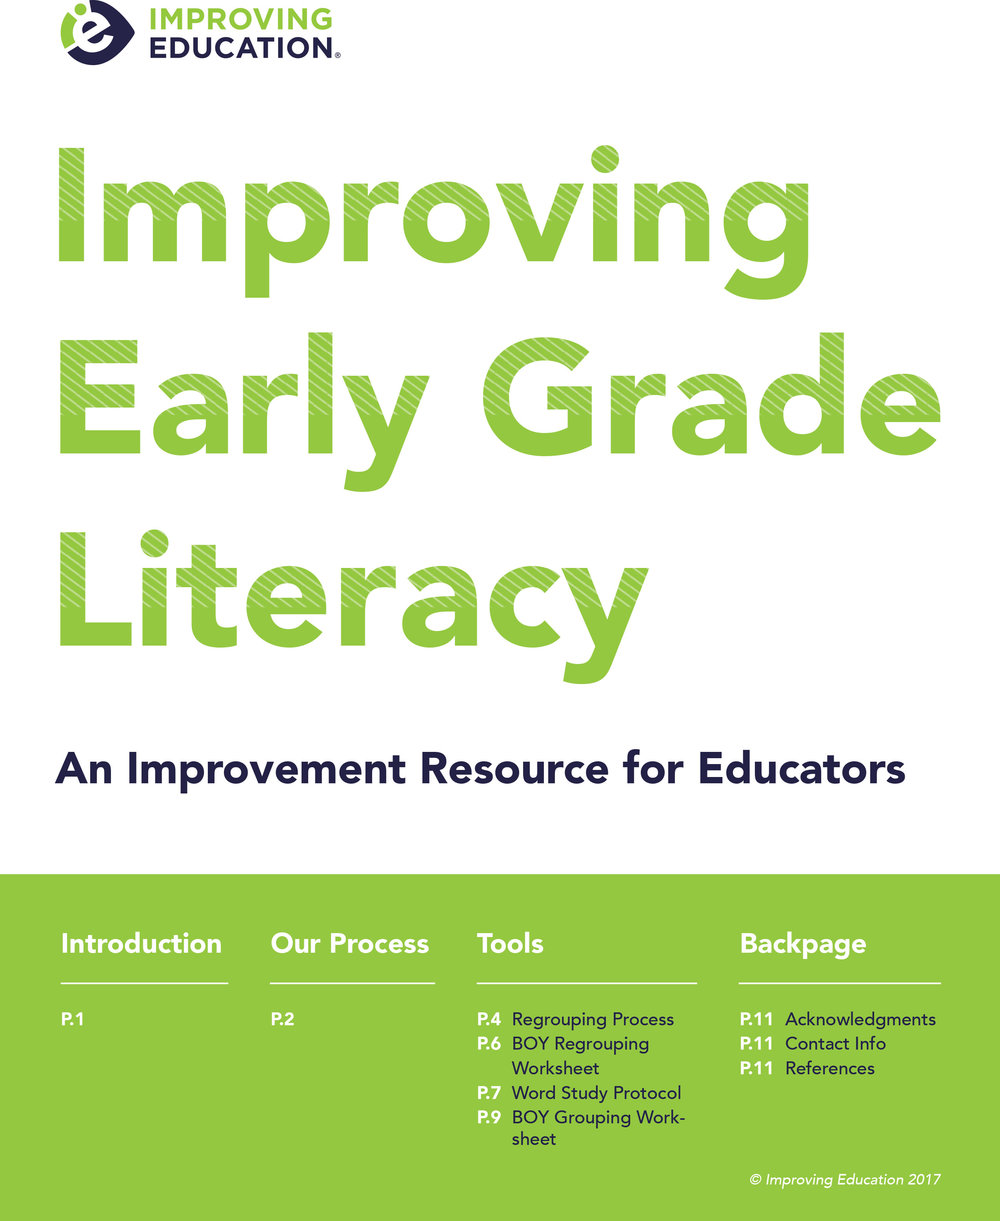 Learn more about our improvement work in schools, including tools and protocols that can be used to support student literacy growth.